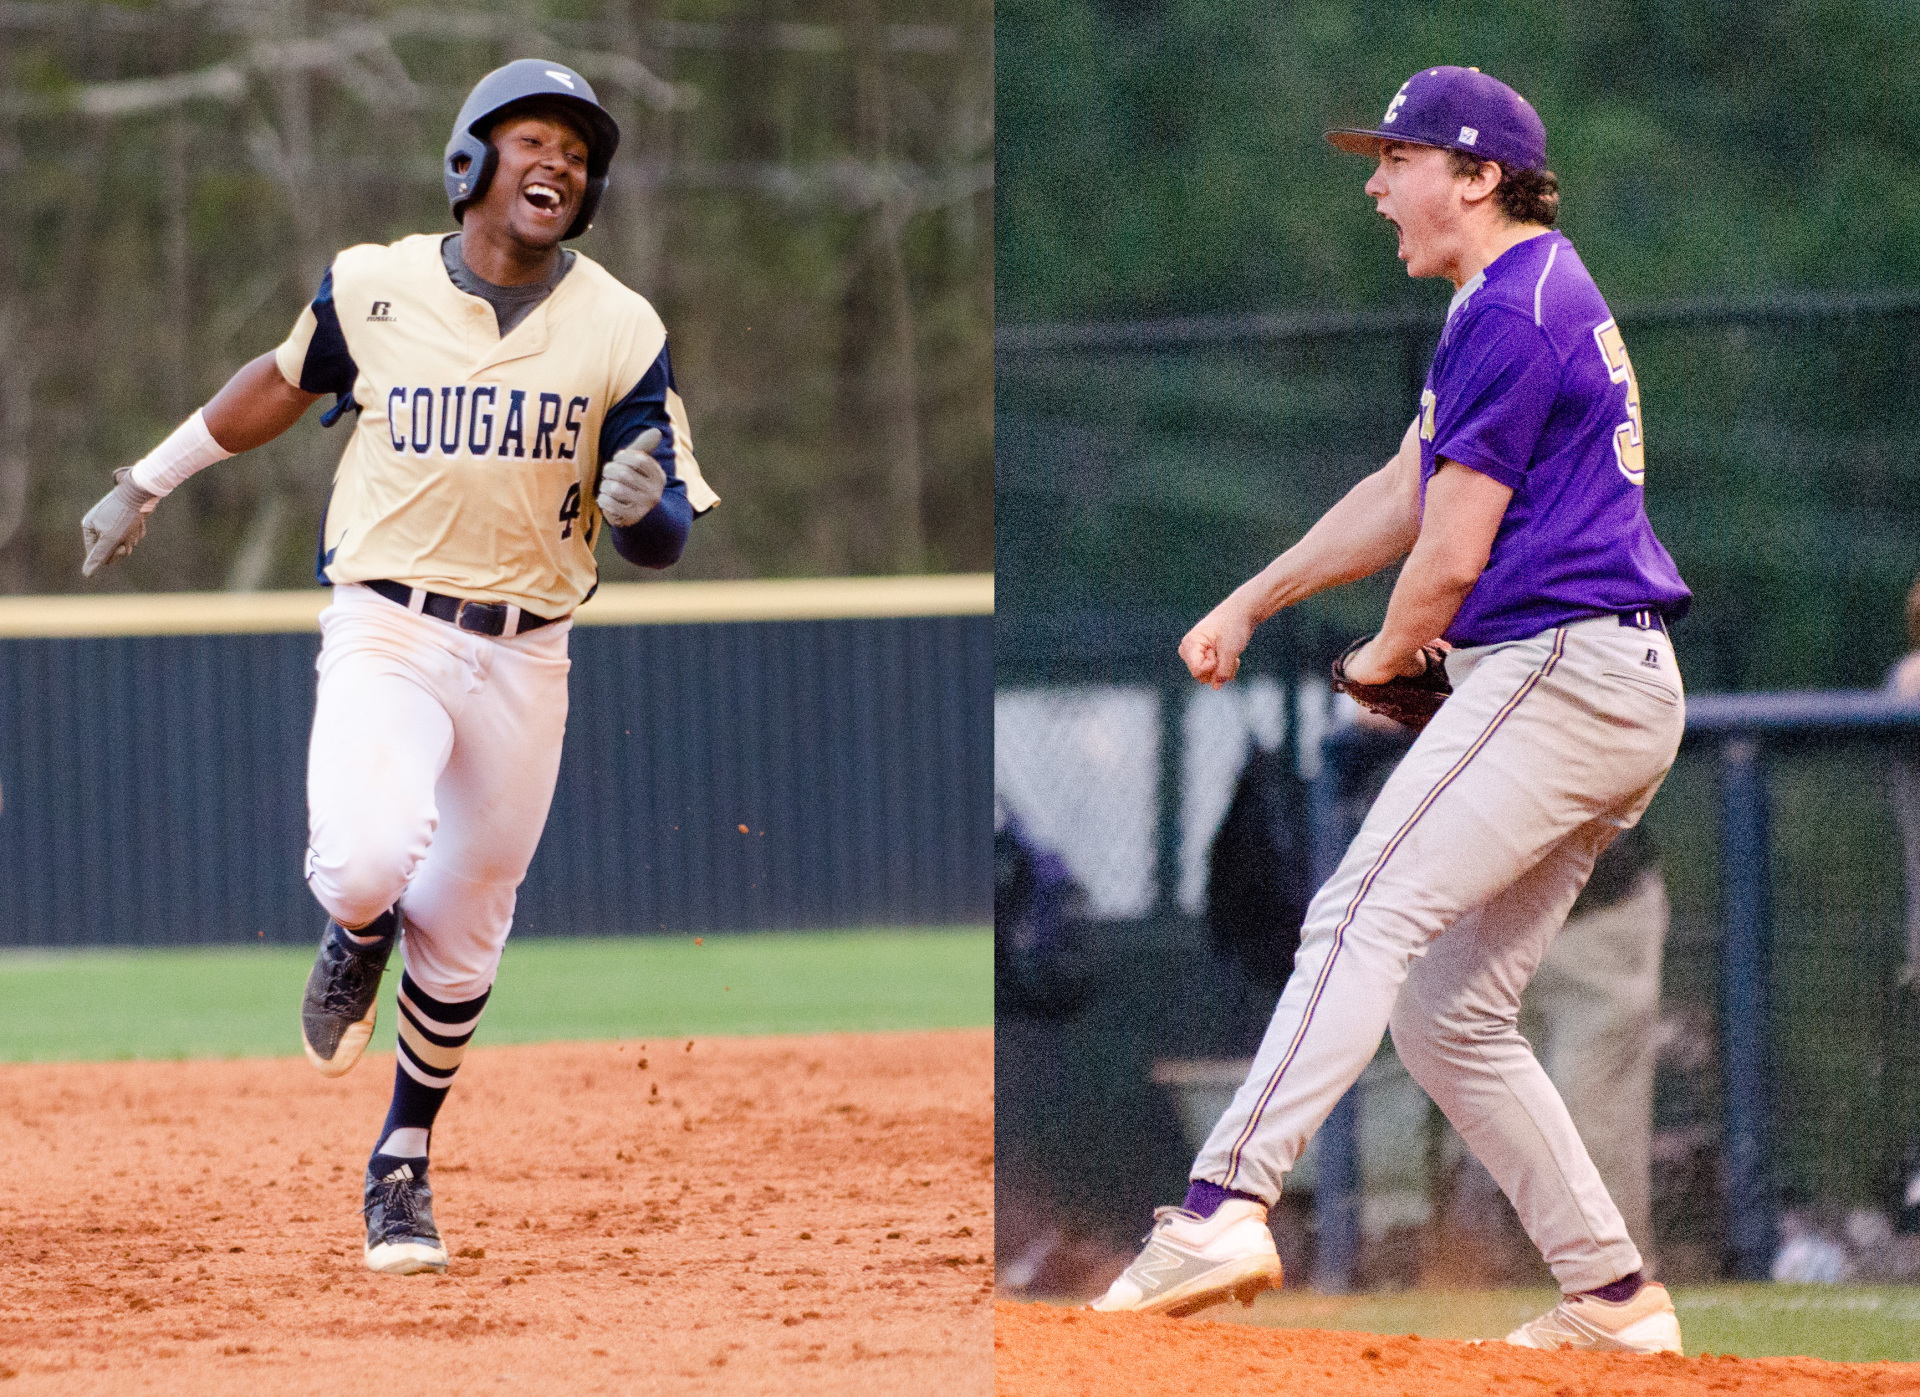 Newnan's K.D. Satterwhite was named Player of the Year and ECHS's Mason Frady Pitcher of the Year